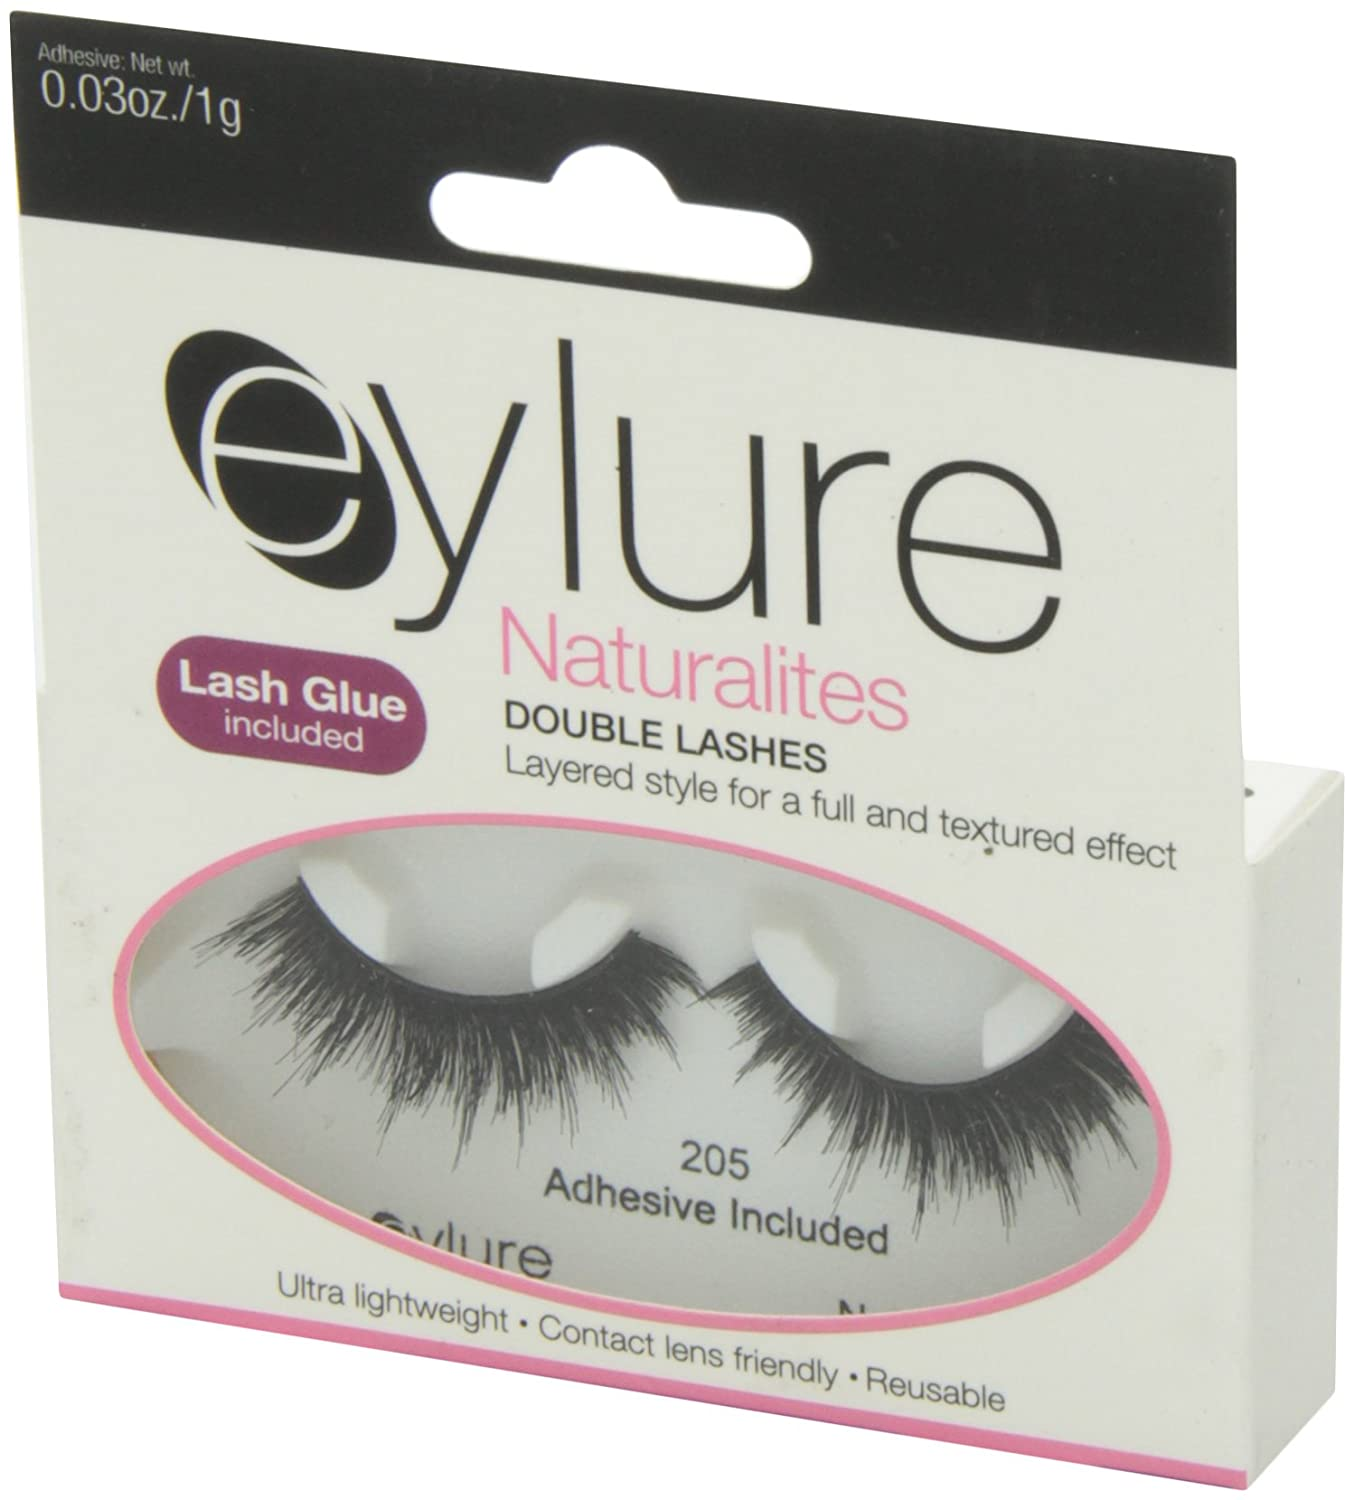 cc6d1b7ee55 Amazon.com : Eylure Naturalites Double Lashes, 205, 18.14 Gram : Fake  Eyelashes And Adhesives : Beauty